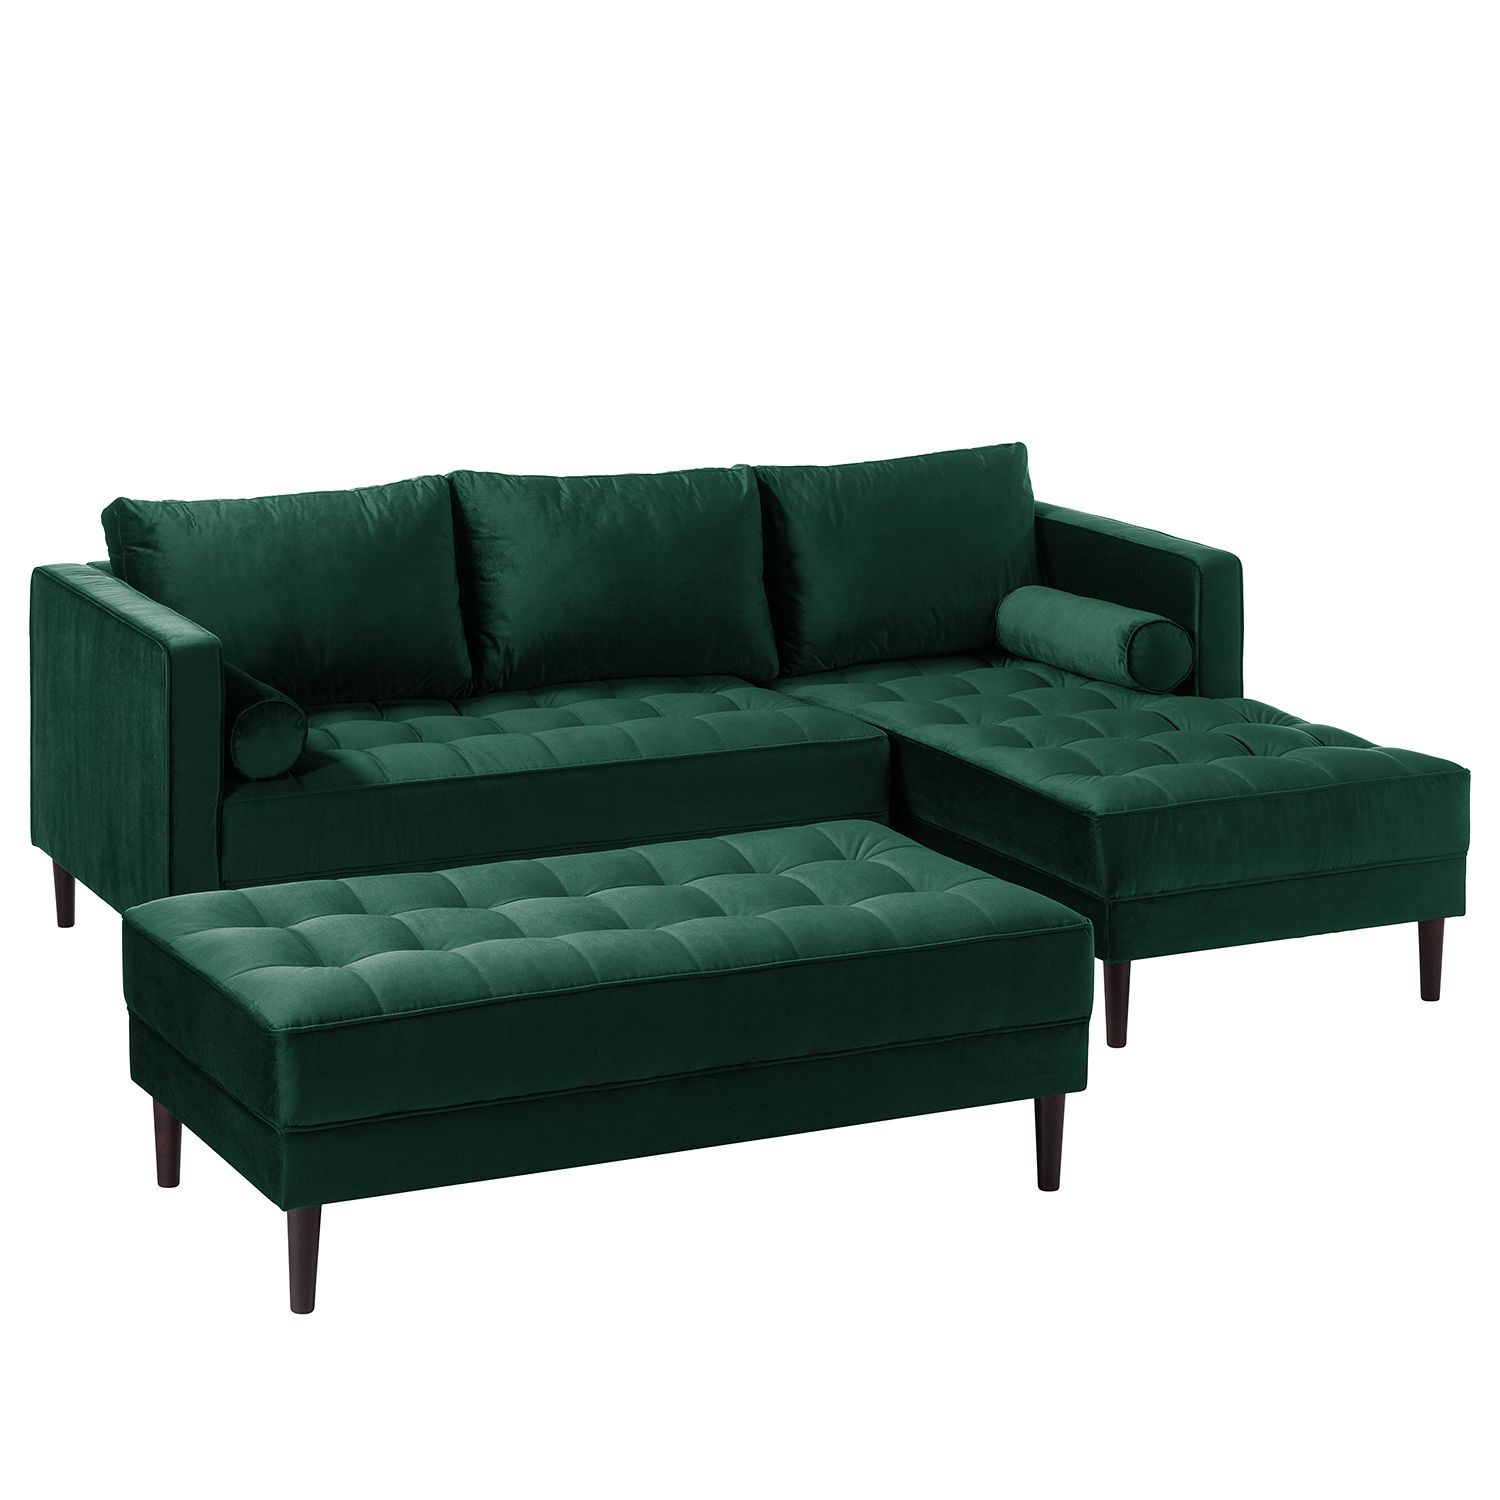 Sofa Dunkelgrün Pin By Ladendirekt On Sofas Couches Sofa Living Room Couch